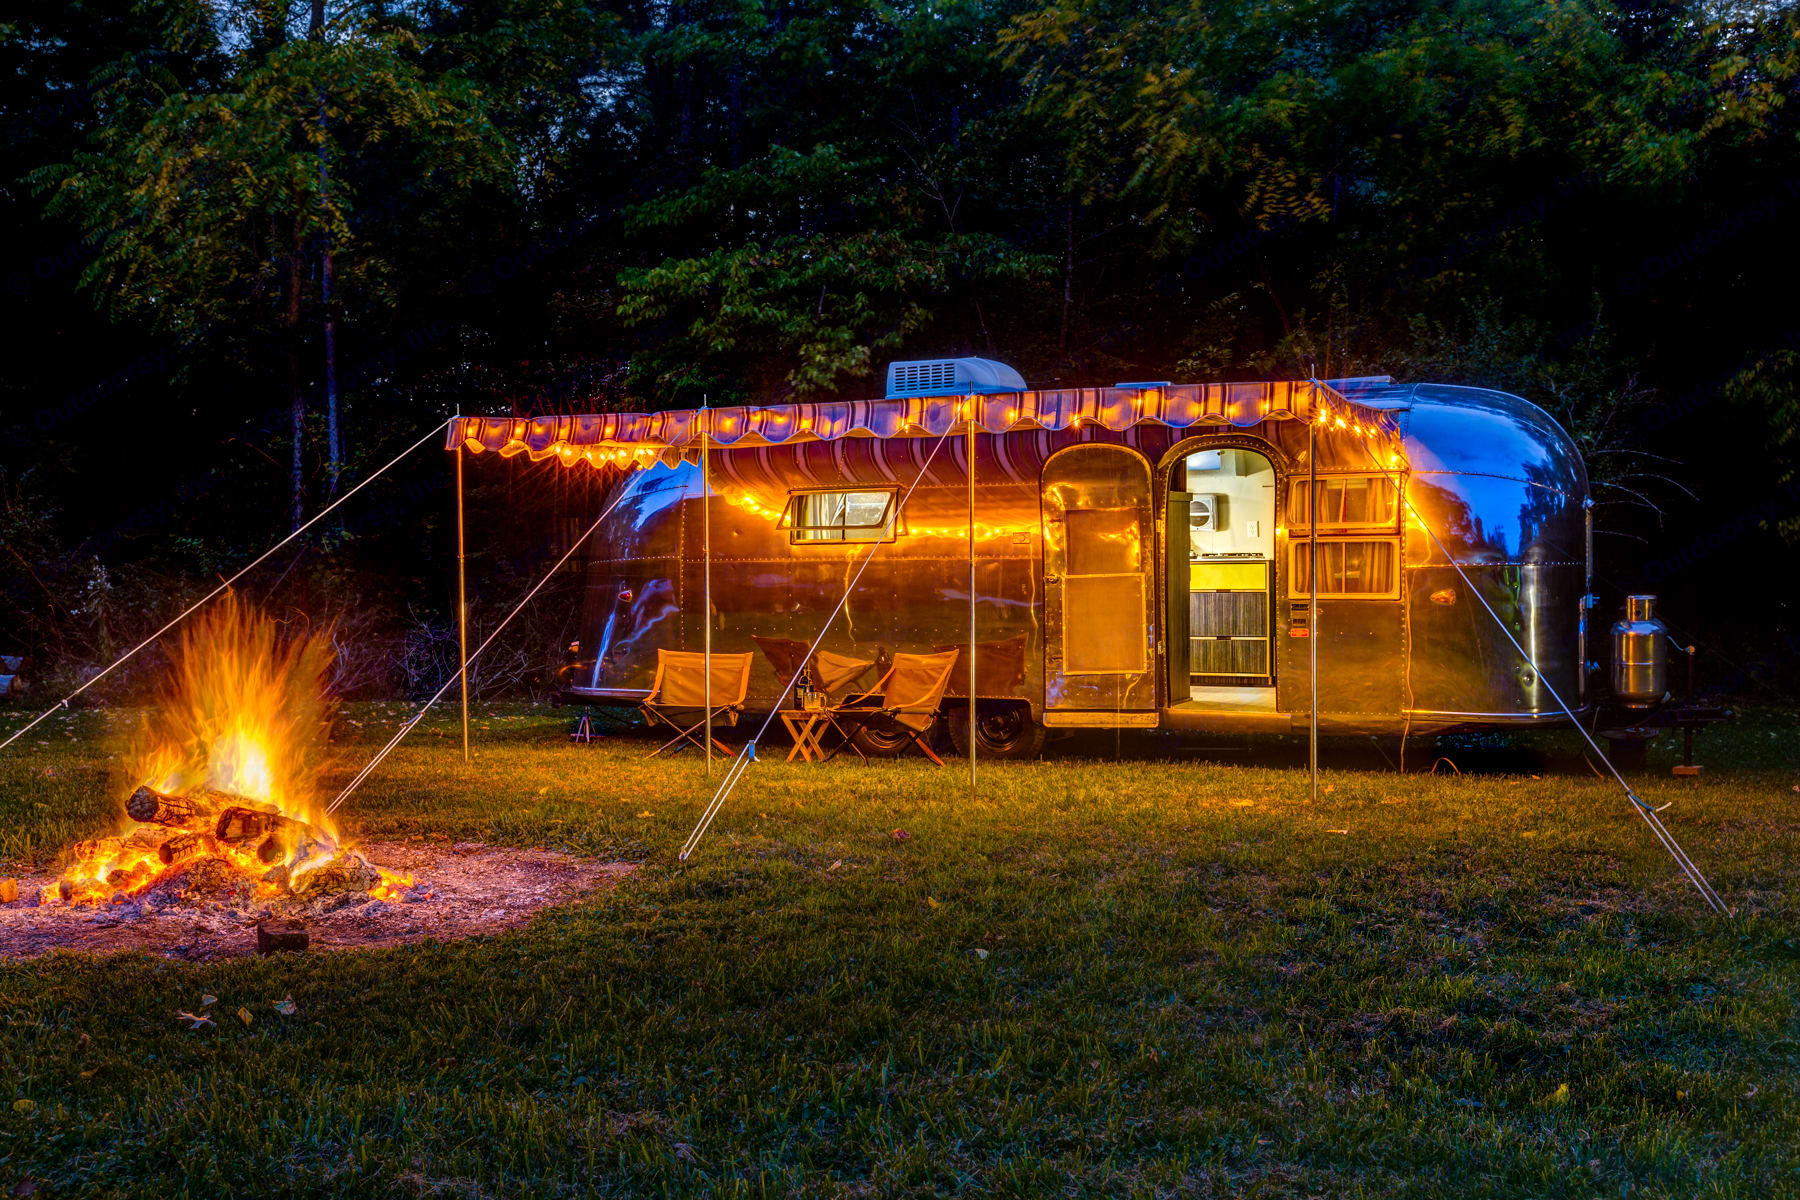 This beautiful Airstream is sure to inspire as the evening sets in.. Airstream Overlander 1958